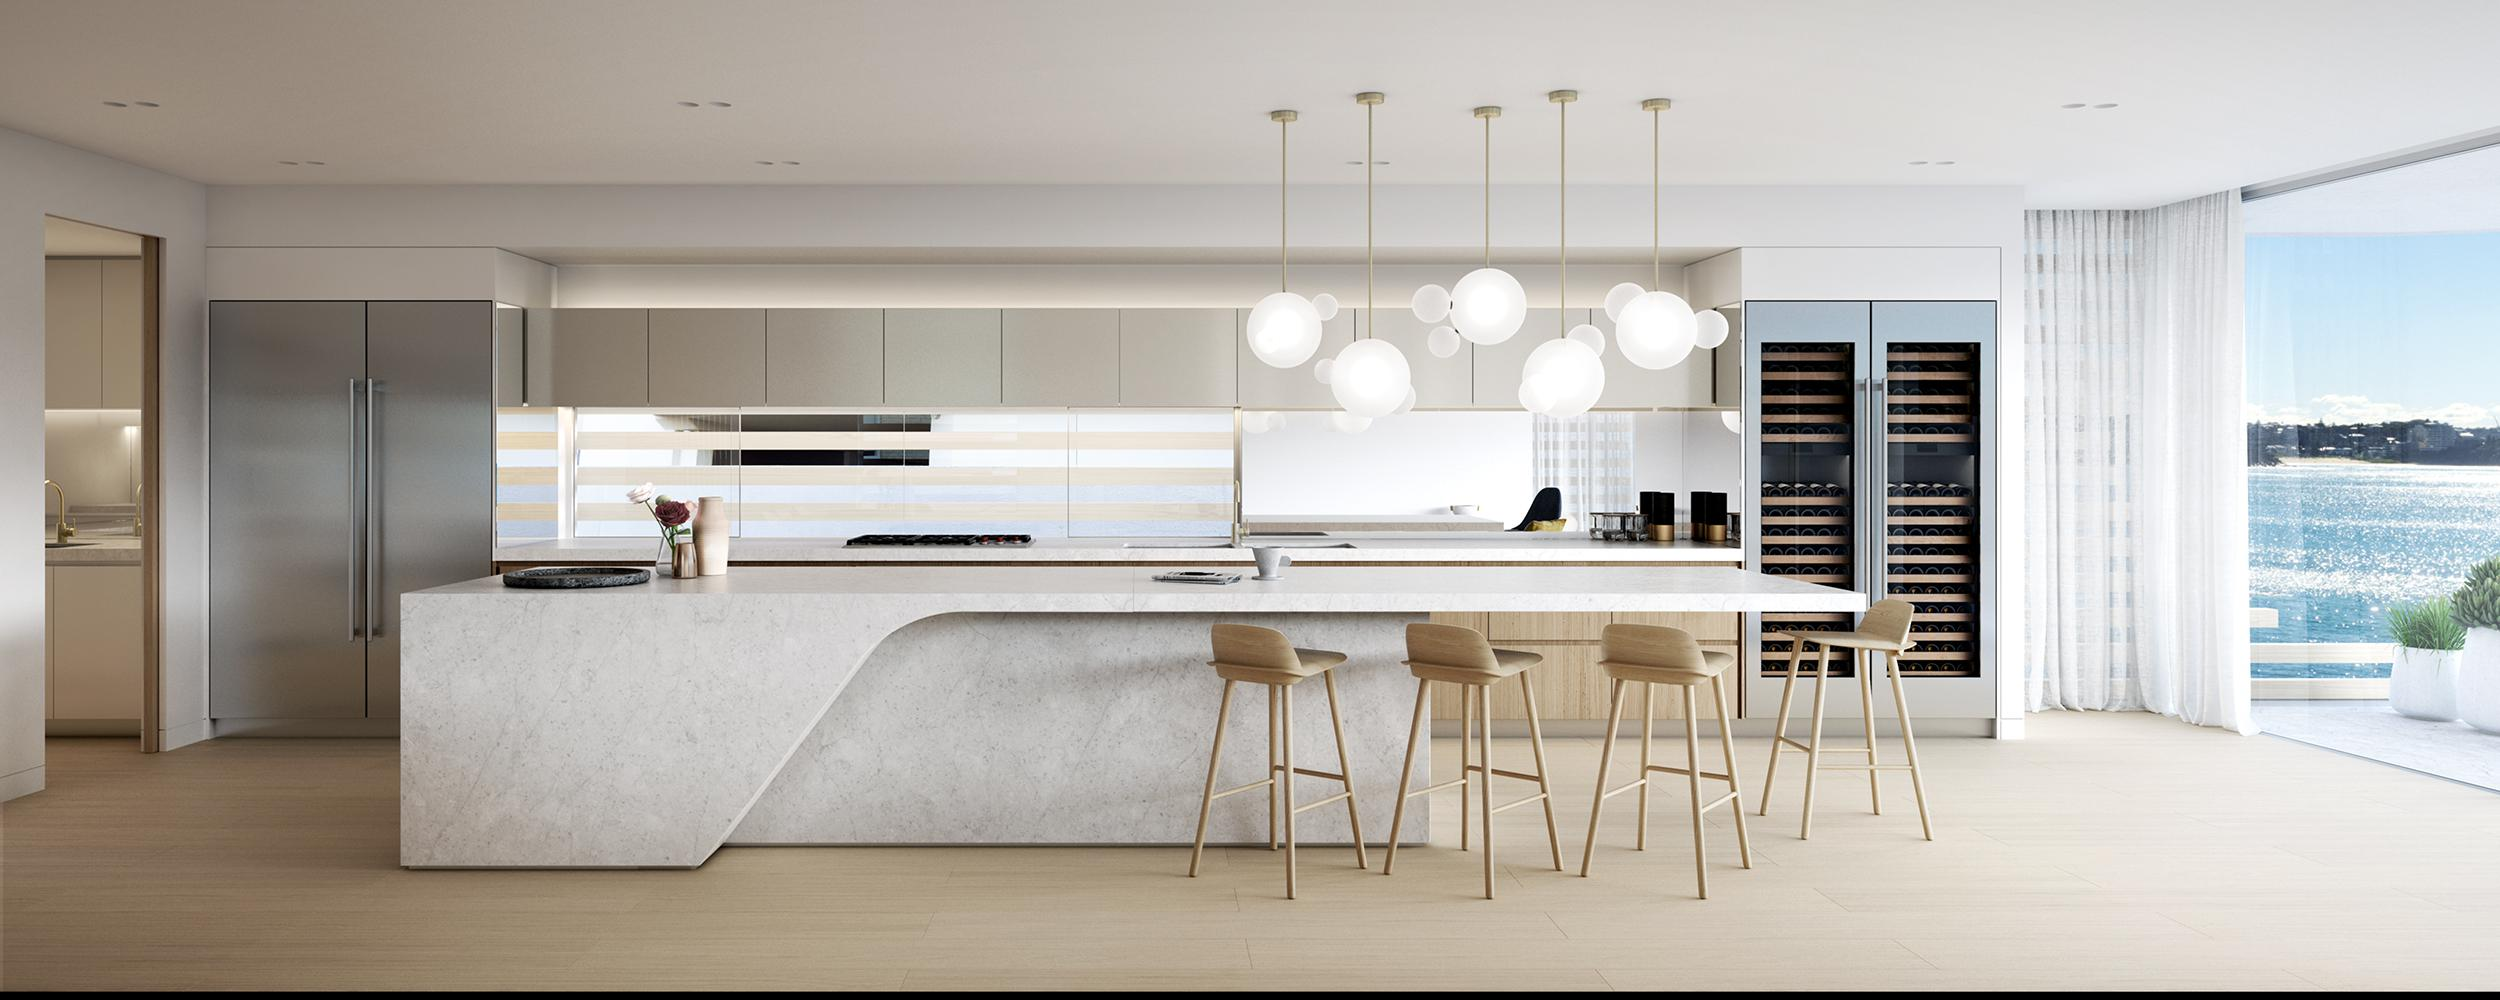 CostaFox_BowerSt_Kitchen_LR